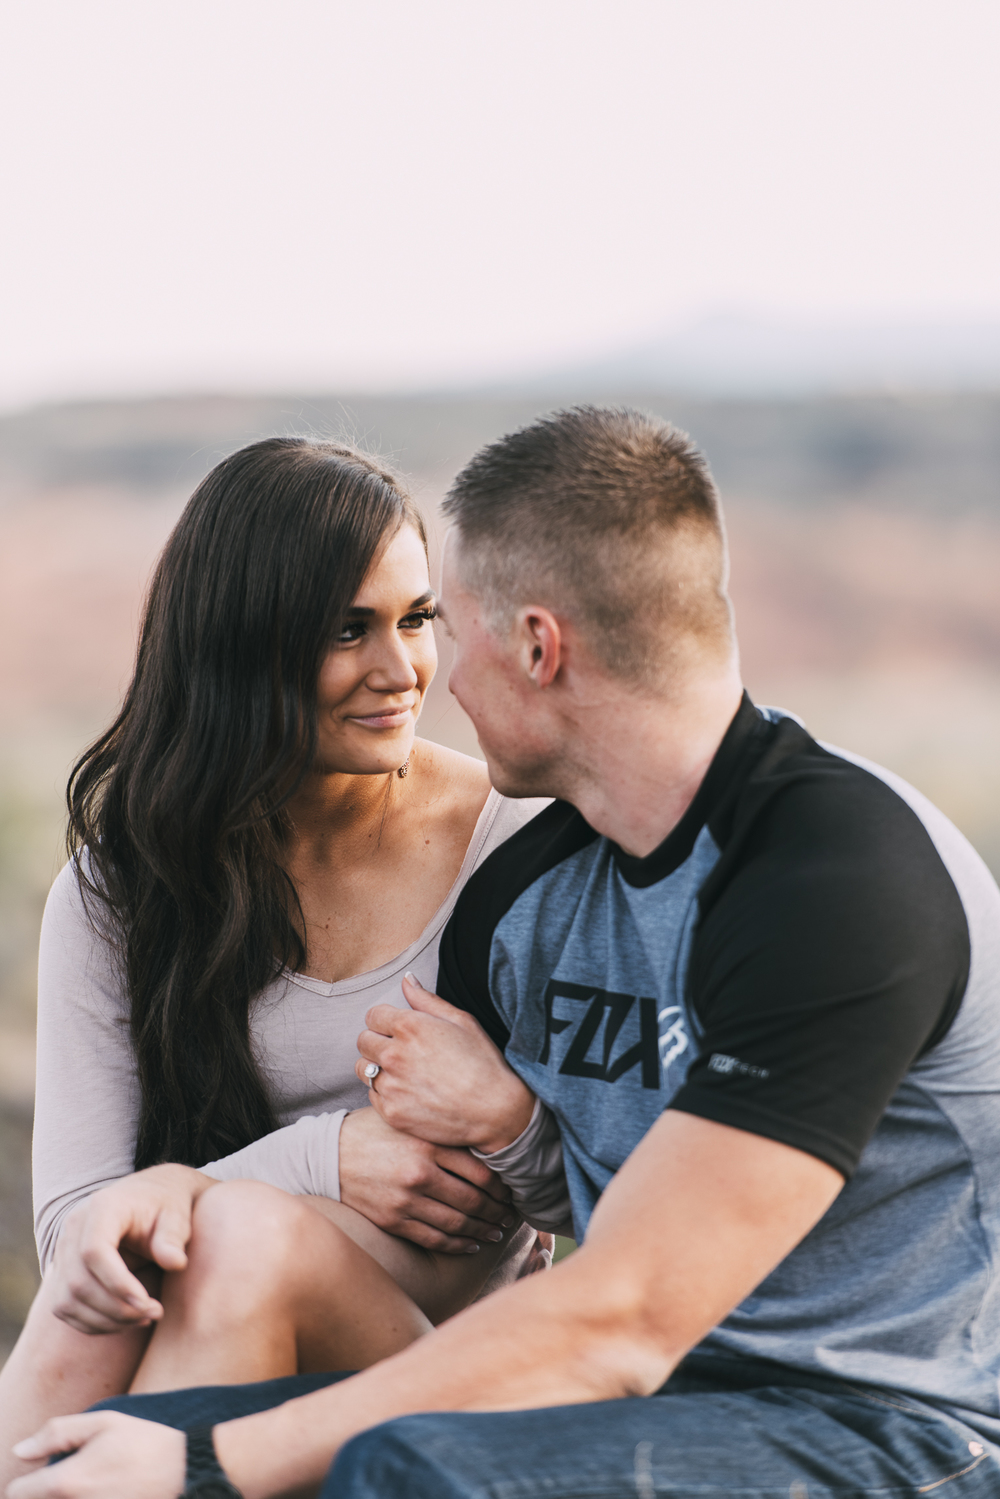 050416KELSEY & RUSTIN ENGAGEMENTS - ST. GEORGE LAS VEGAS PHOTOGRAPHER - DEBI RAE PHOTOGRAPHY-52.jpg